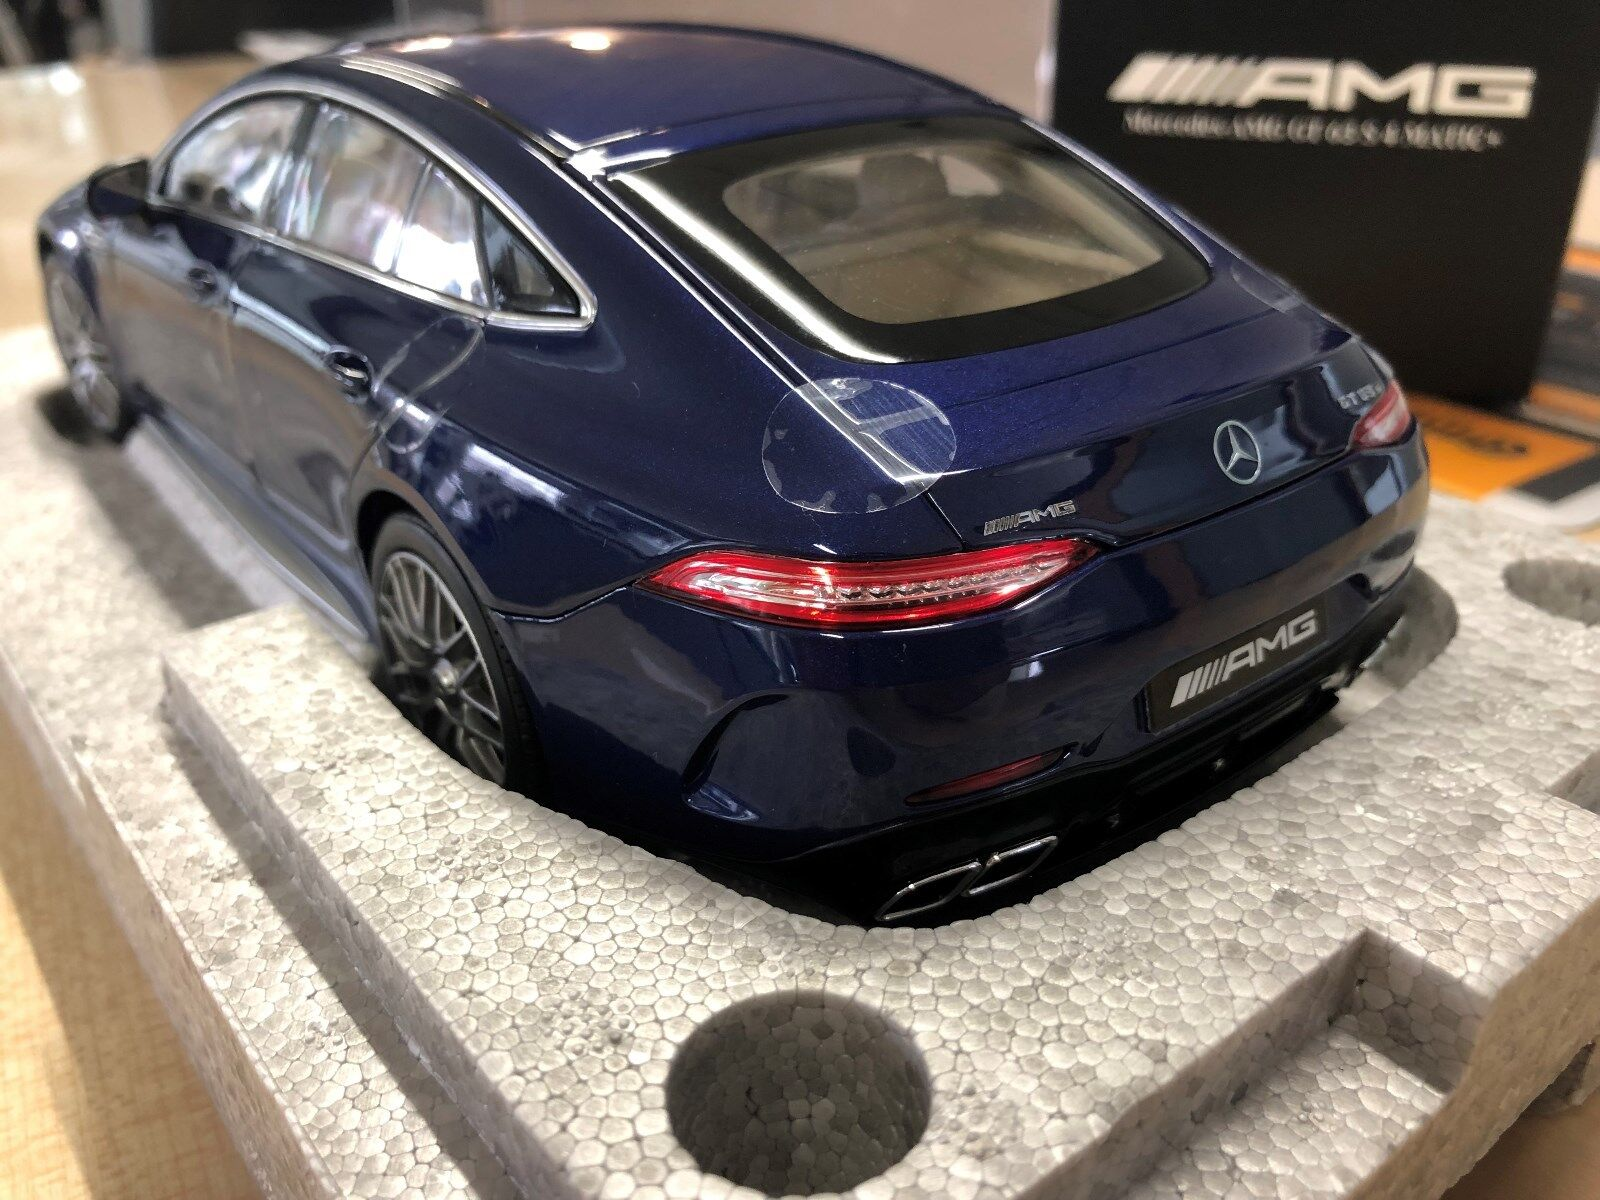 Mercedes Benz, AMG, GT 63 S, 4 Matic, 1 18 Model, Brilliant Blau, Norev